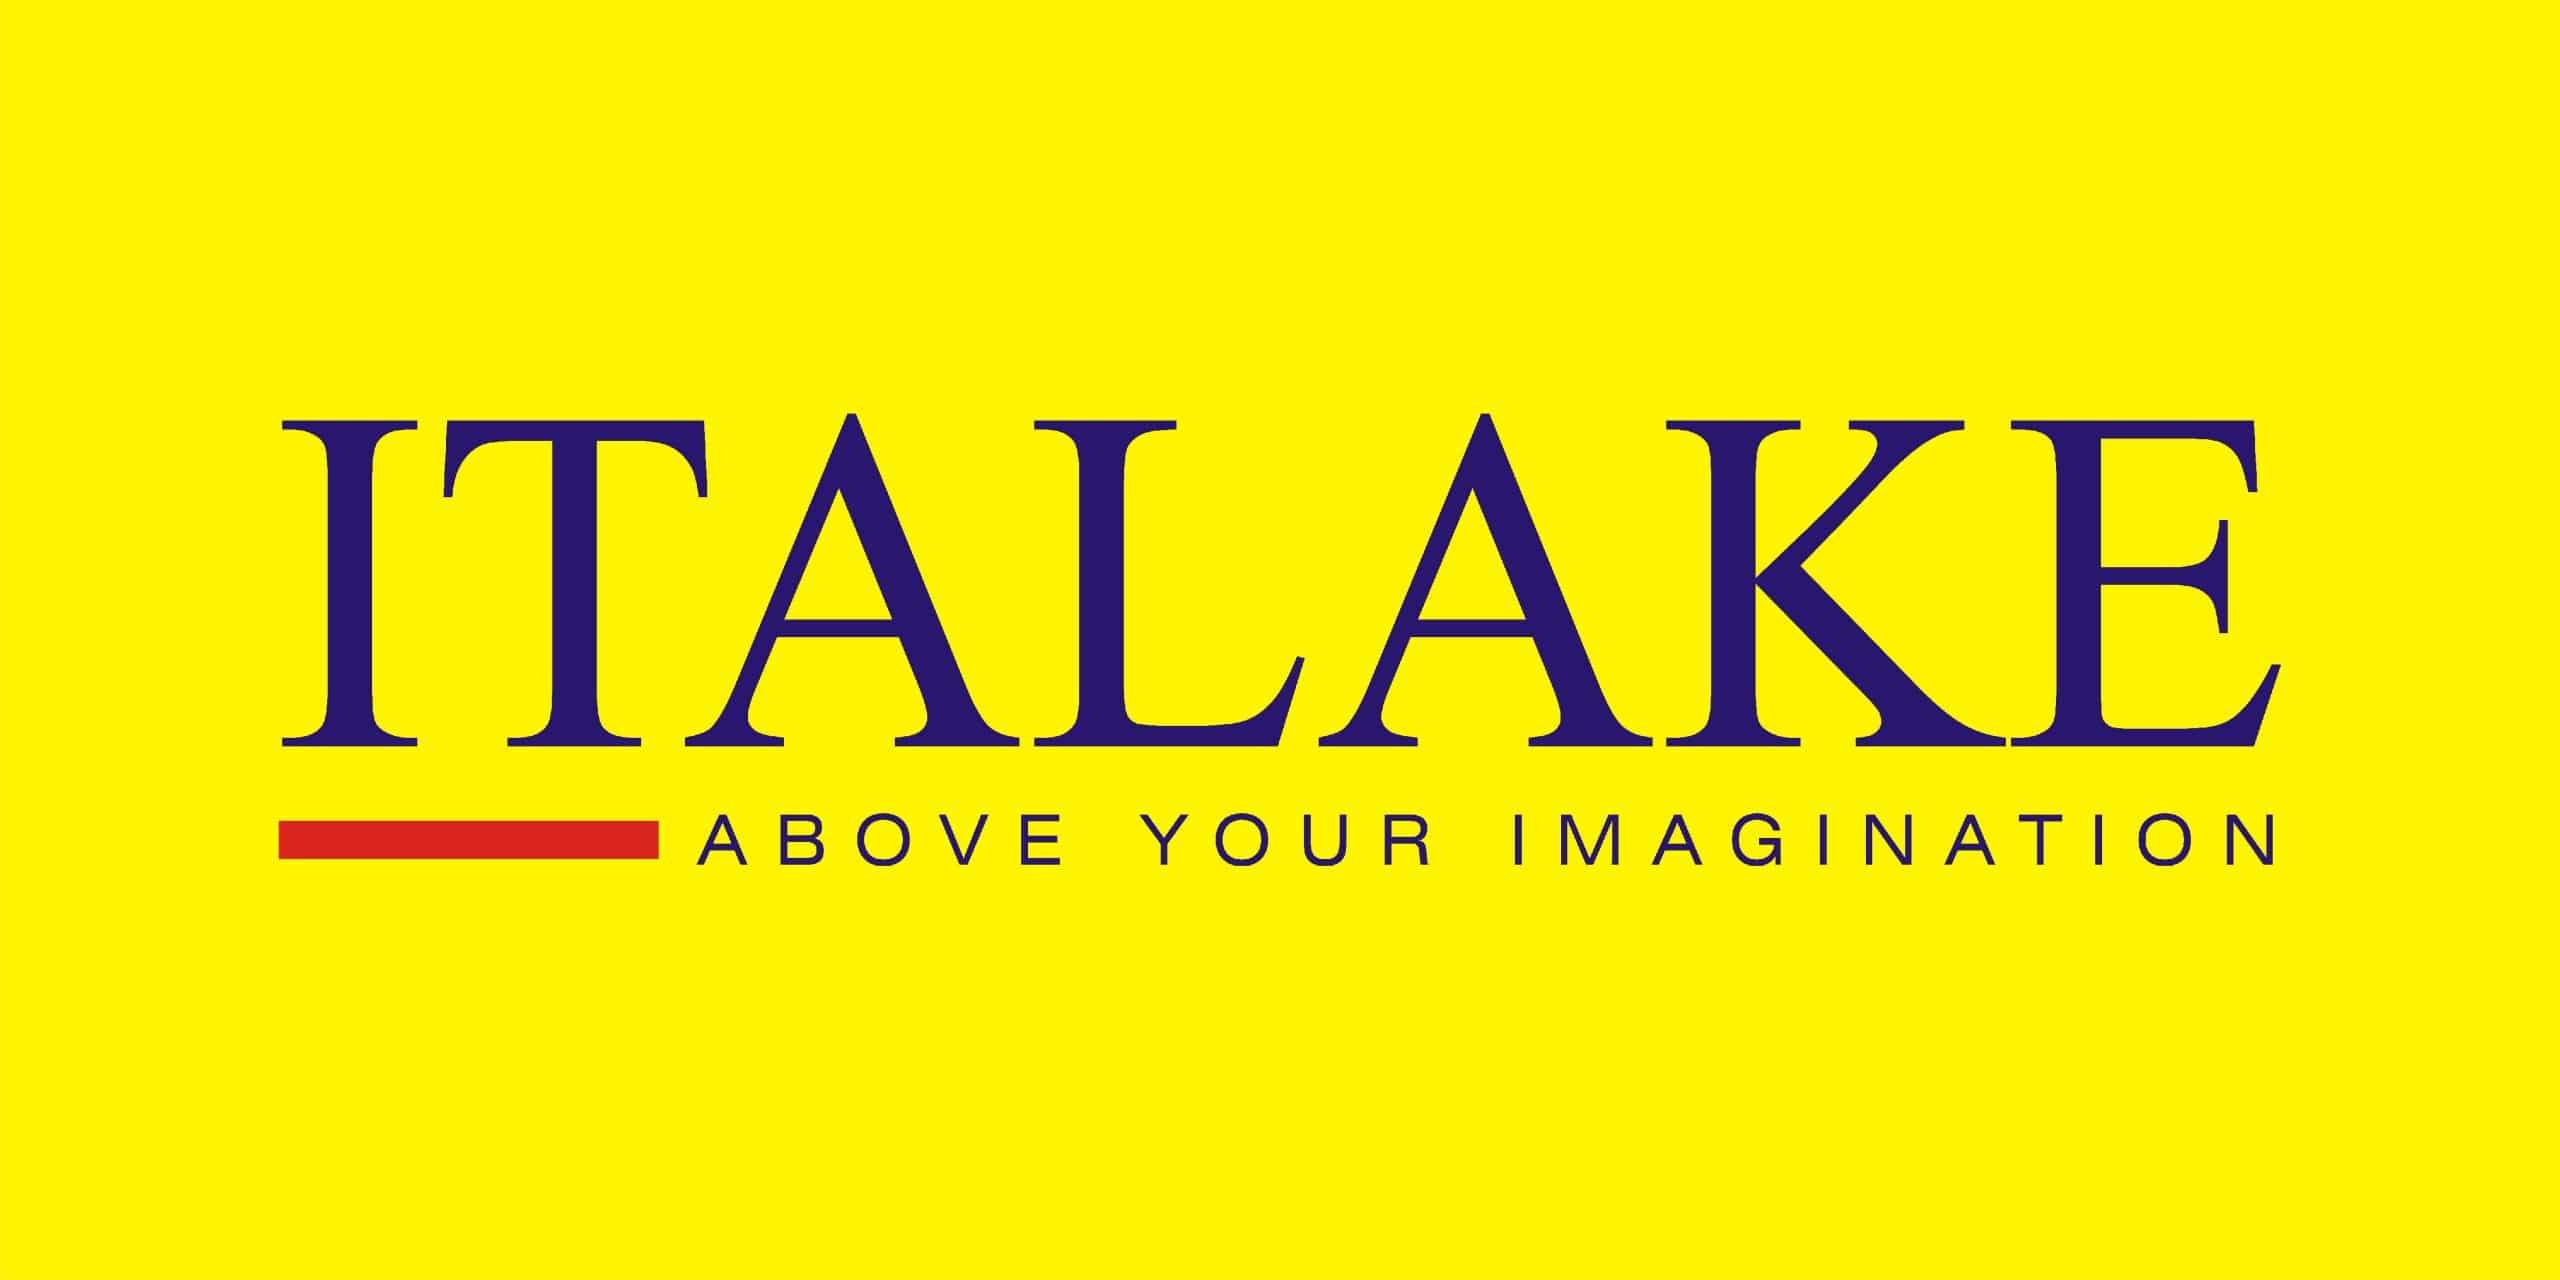 ITALAKE CERAMIC LOGO Scaled, CeraHub